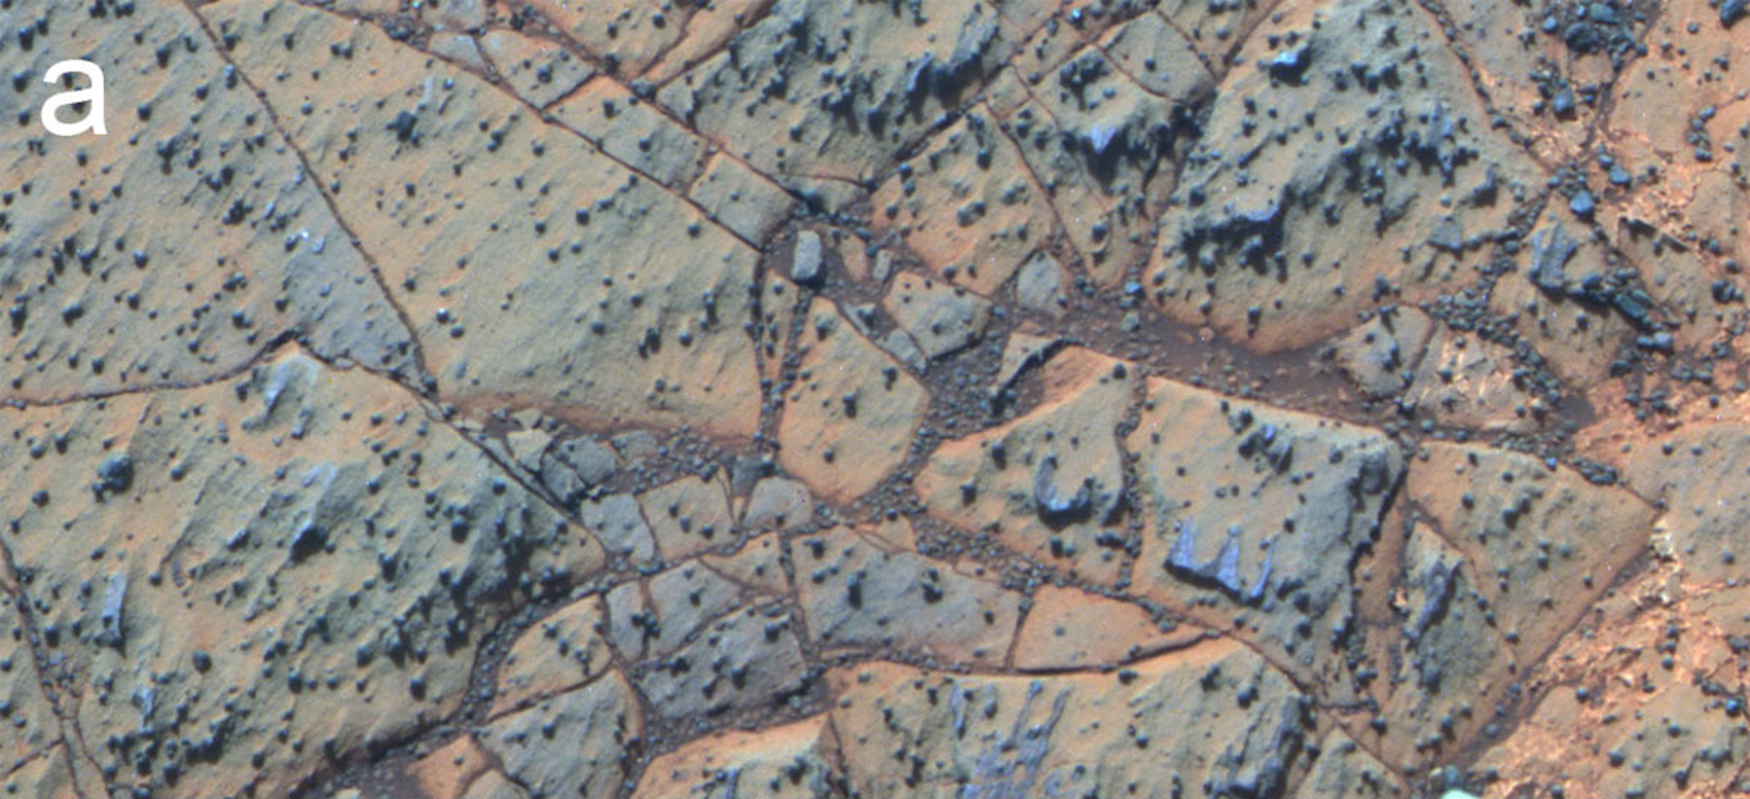 False-colour image of Matijevic formation rocks. They are 3.7 billion years old and contain evidence that fresh water once flowed over them. Image: Science/AAAS.